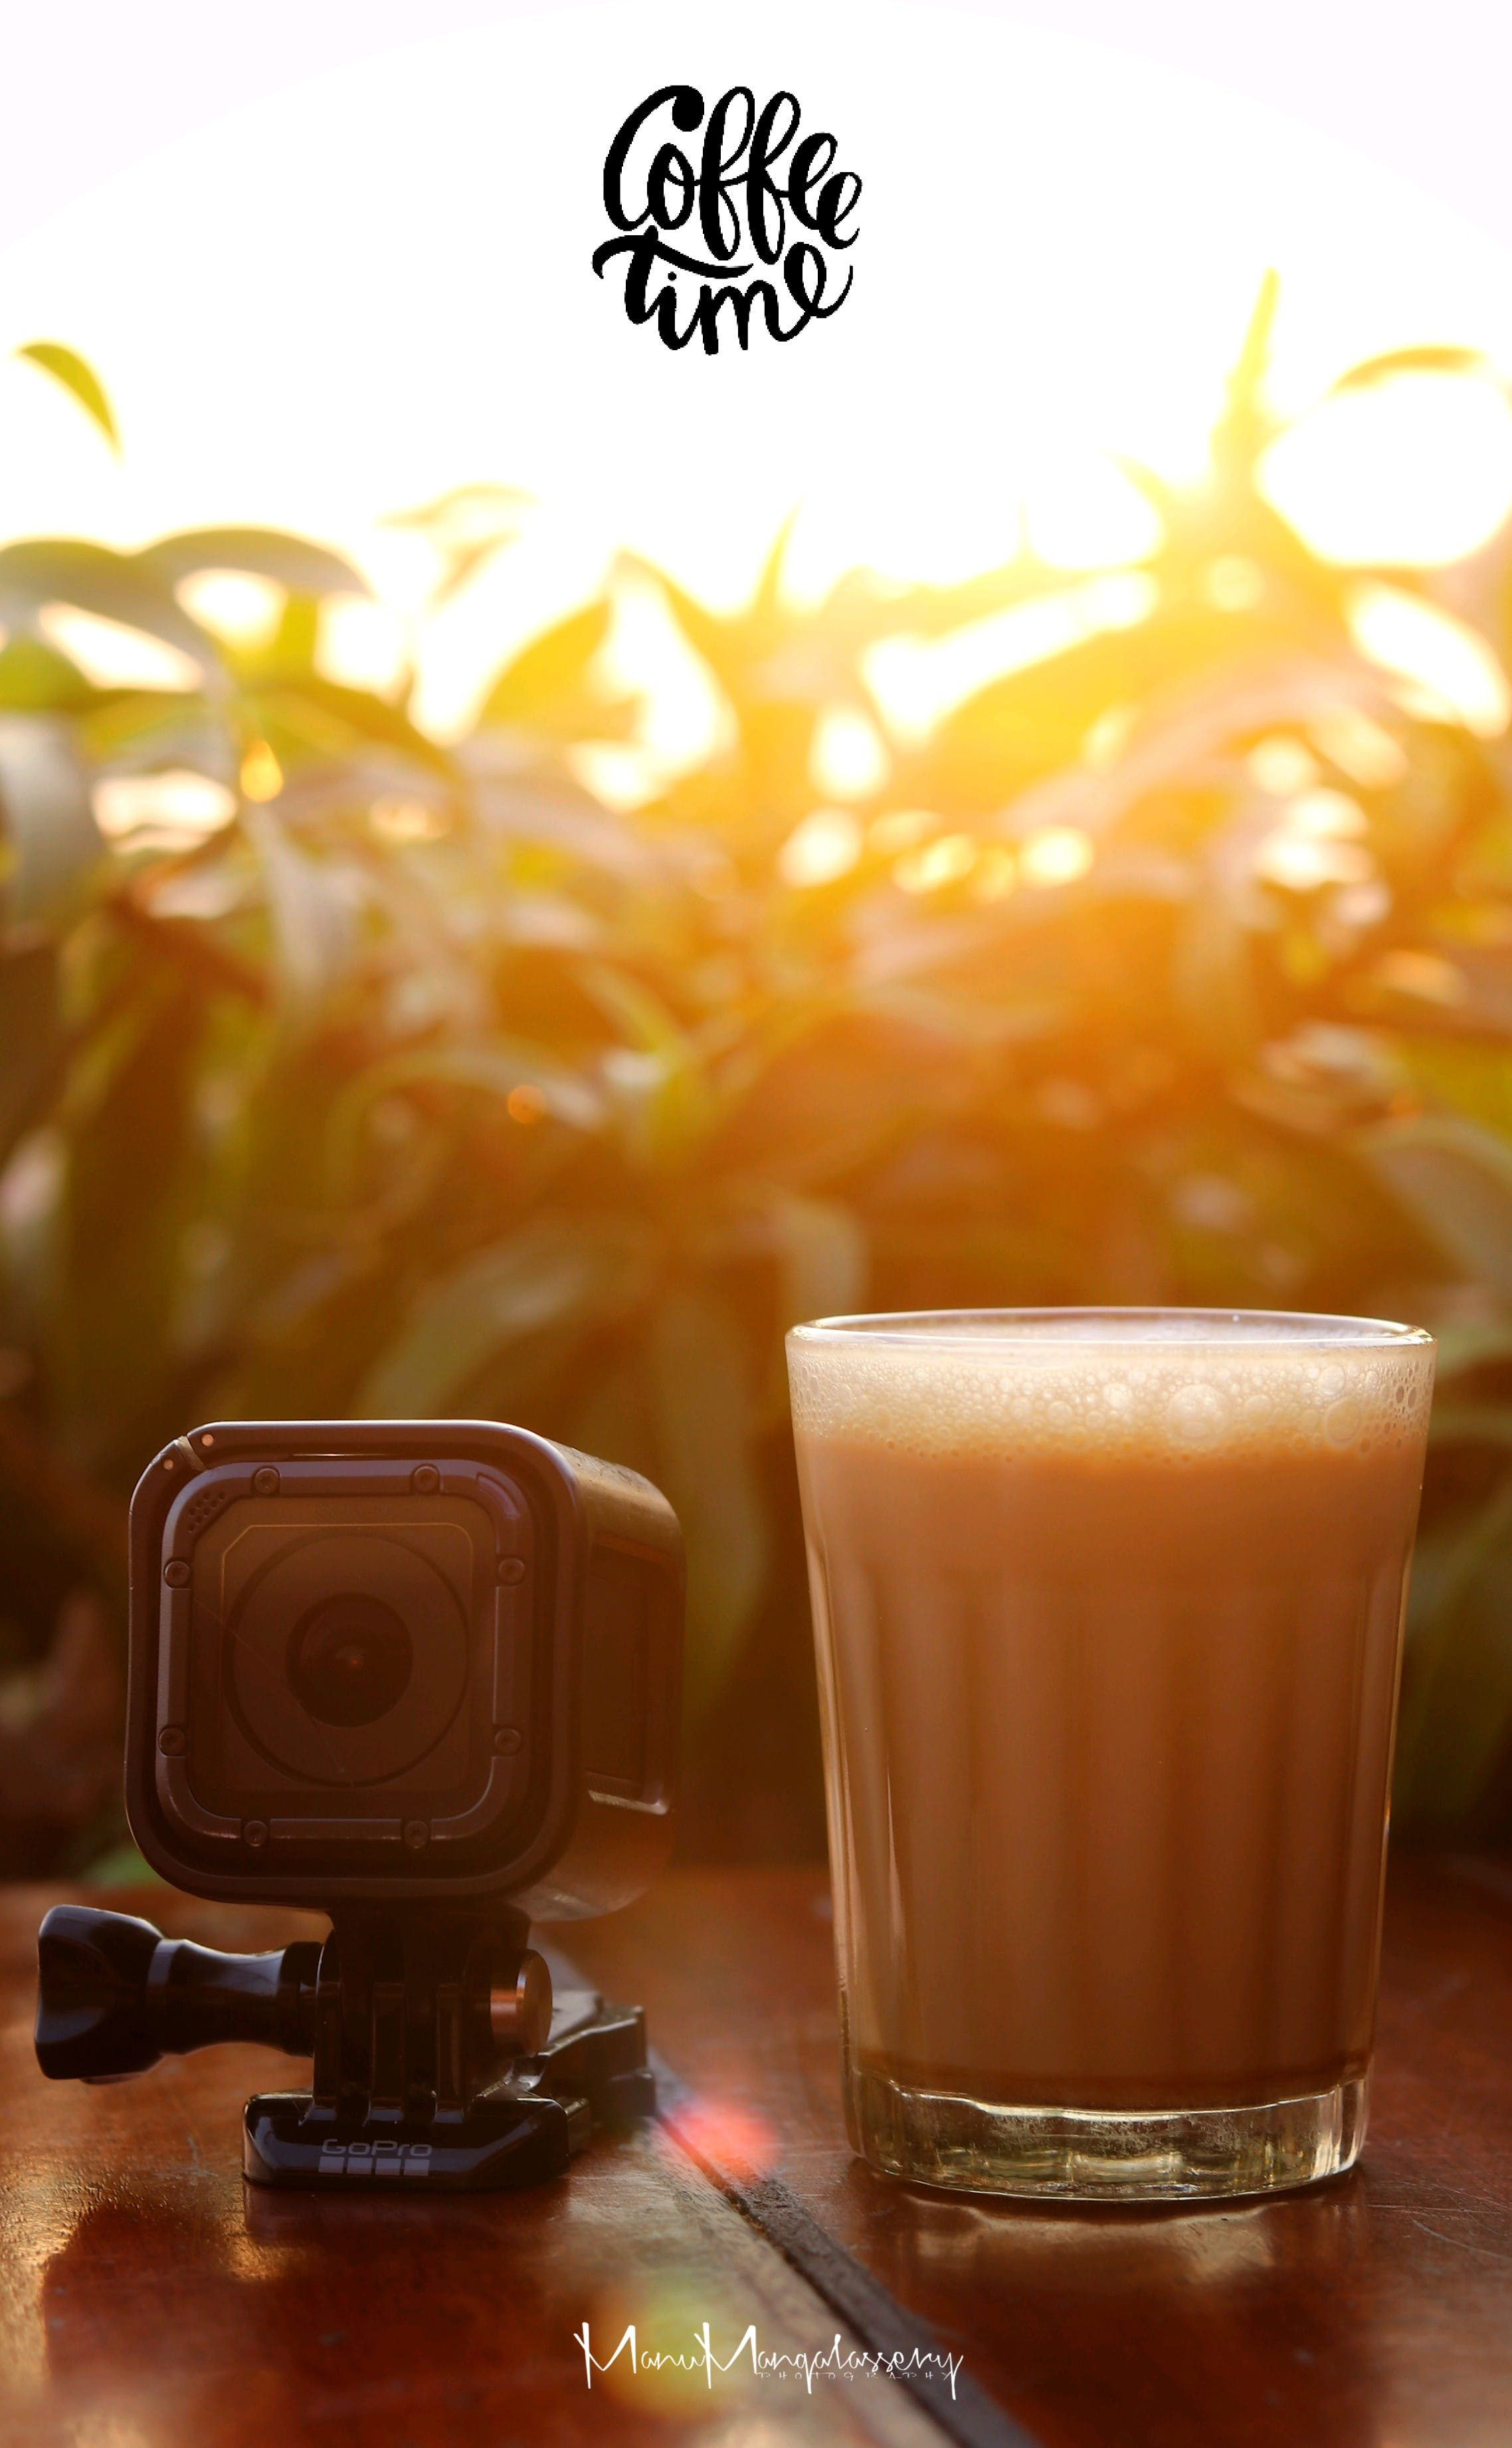 Free stock photo of coffee, coffee cup, gopro, sunset